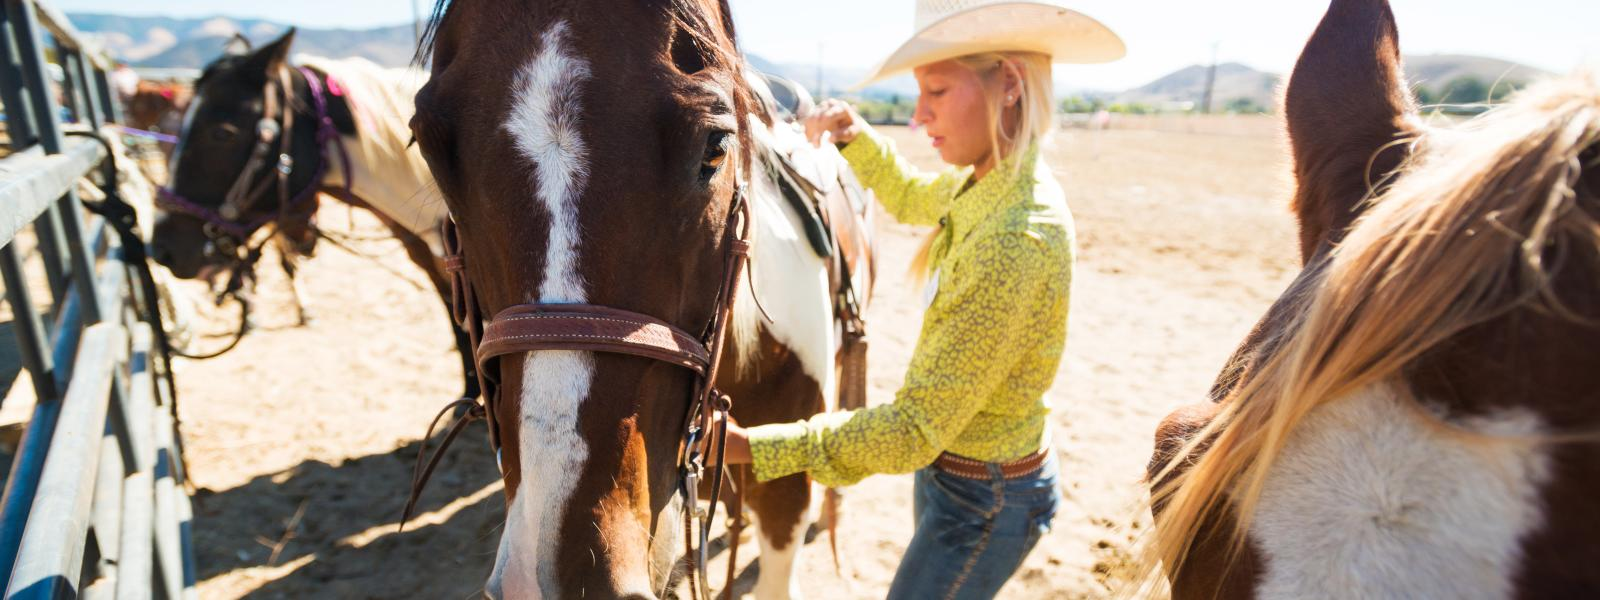 A woman preparing horses for a group ride